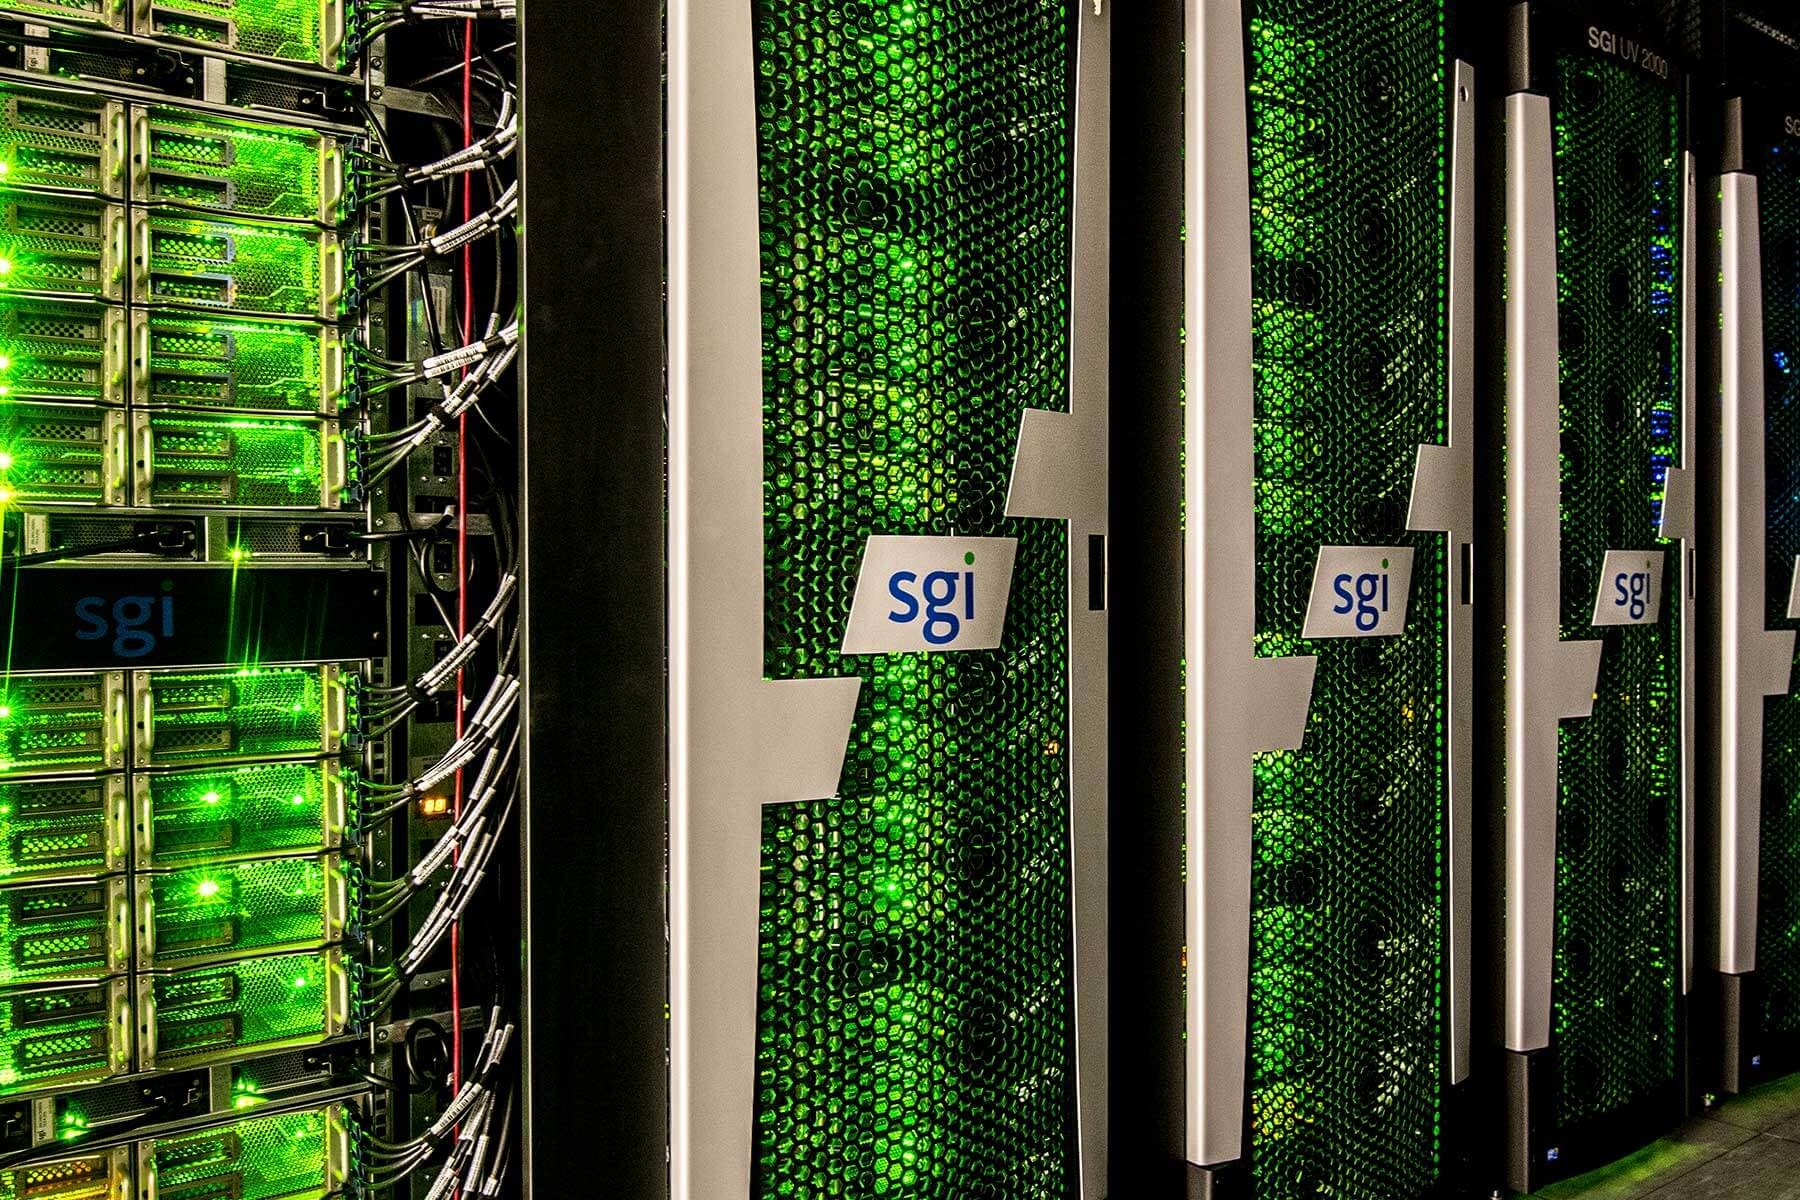 Digital biology requires large HPC infrastructure for big data analysis